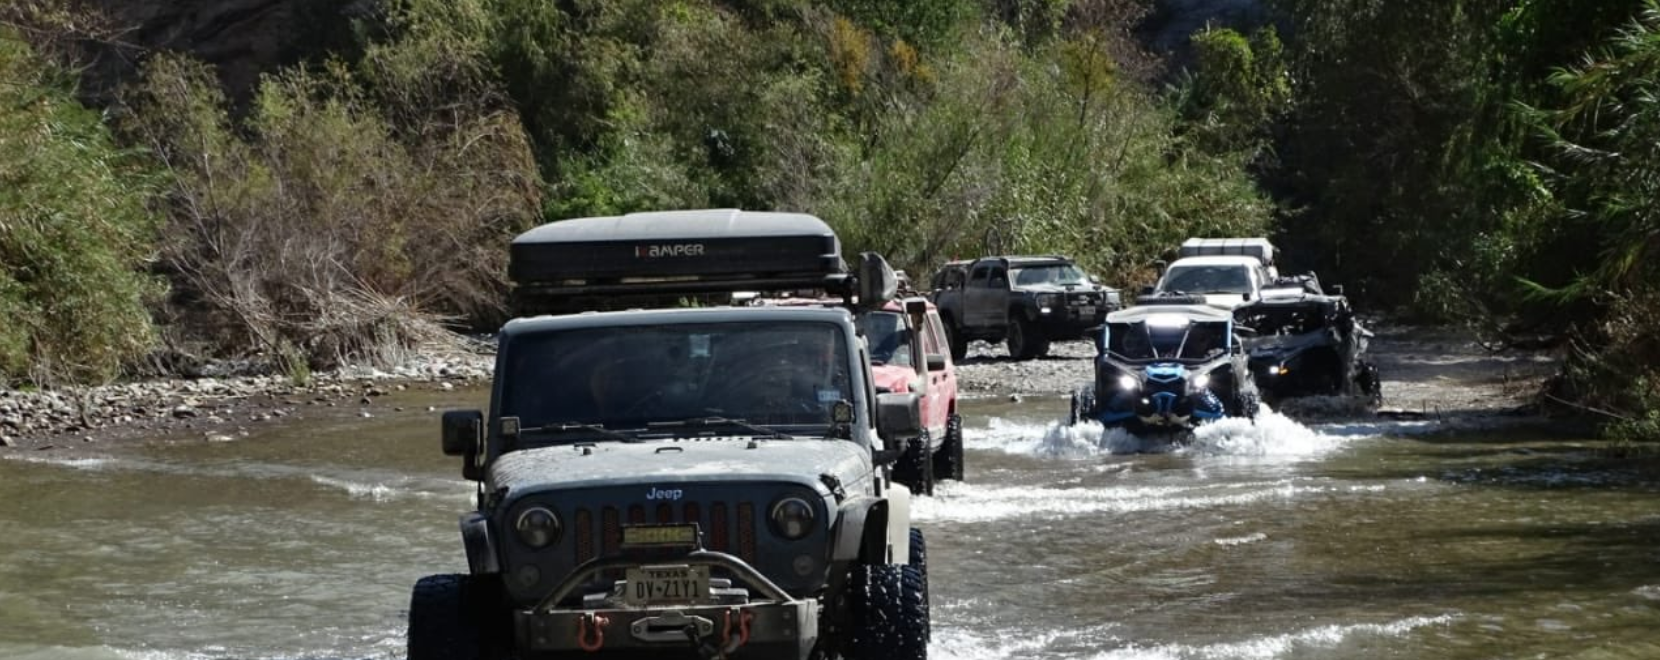 Jeepsies Overlanding Sierra Gorda